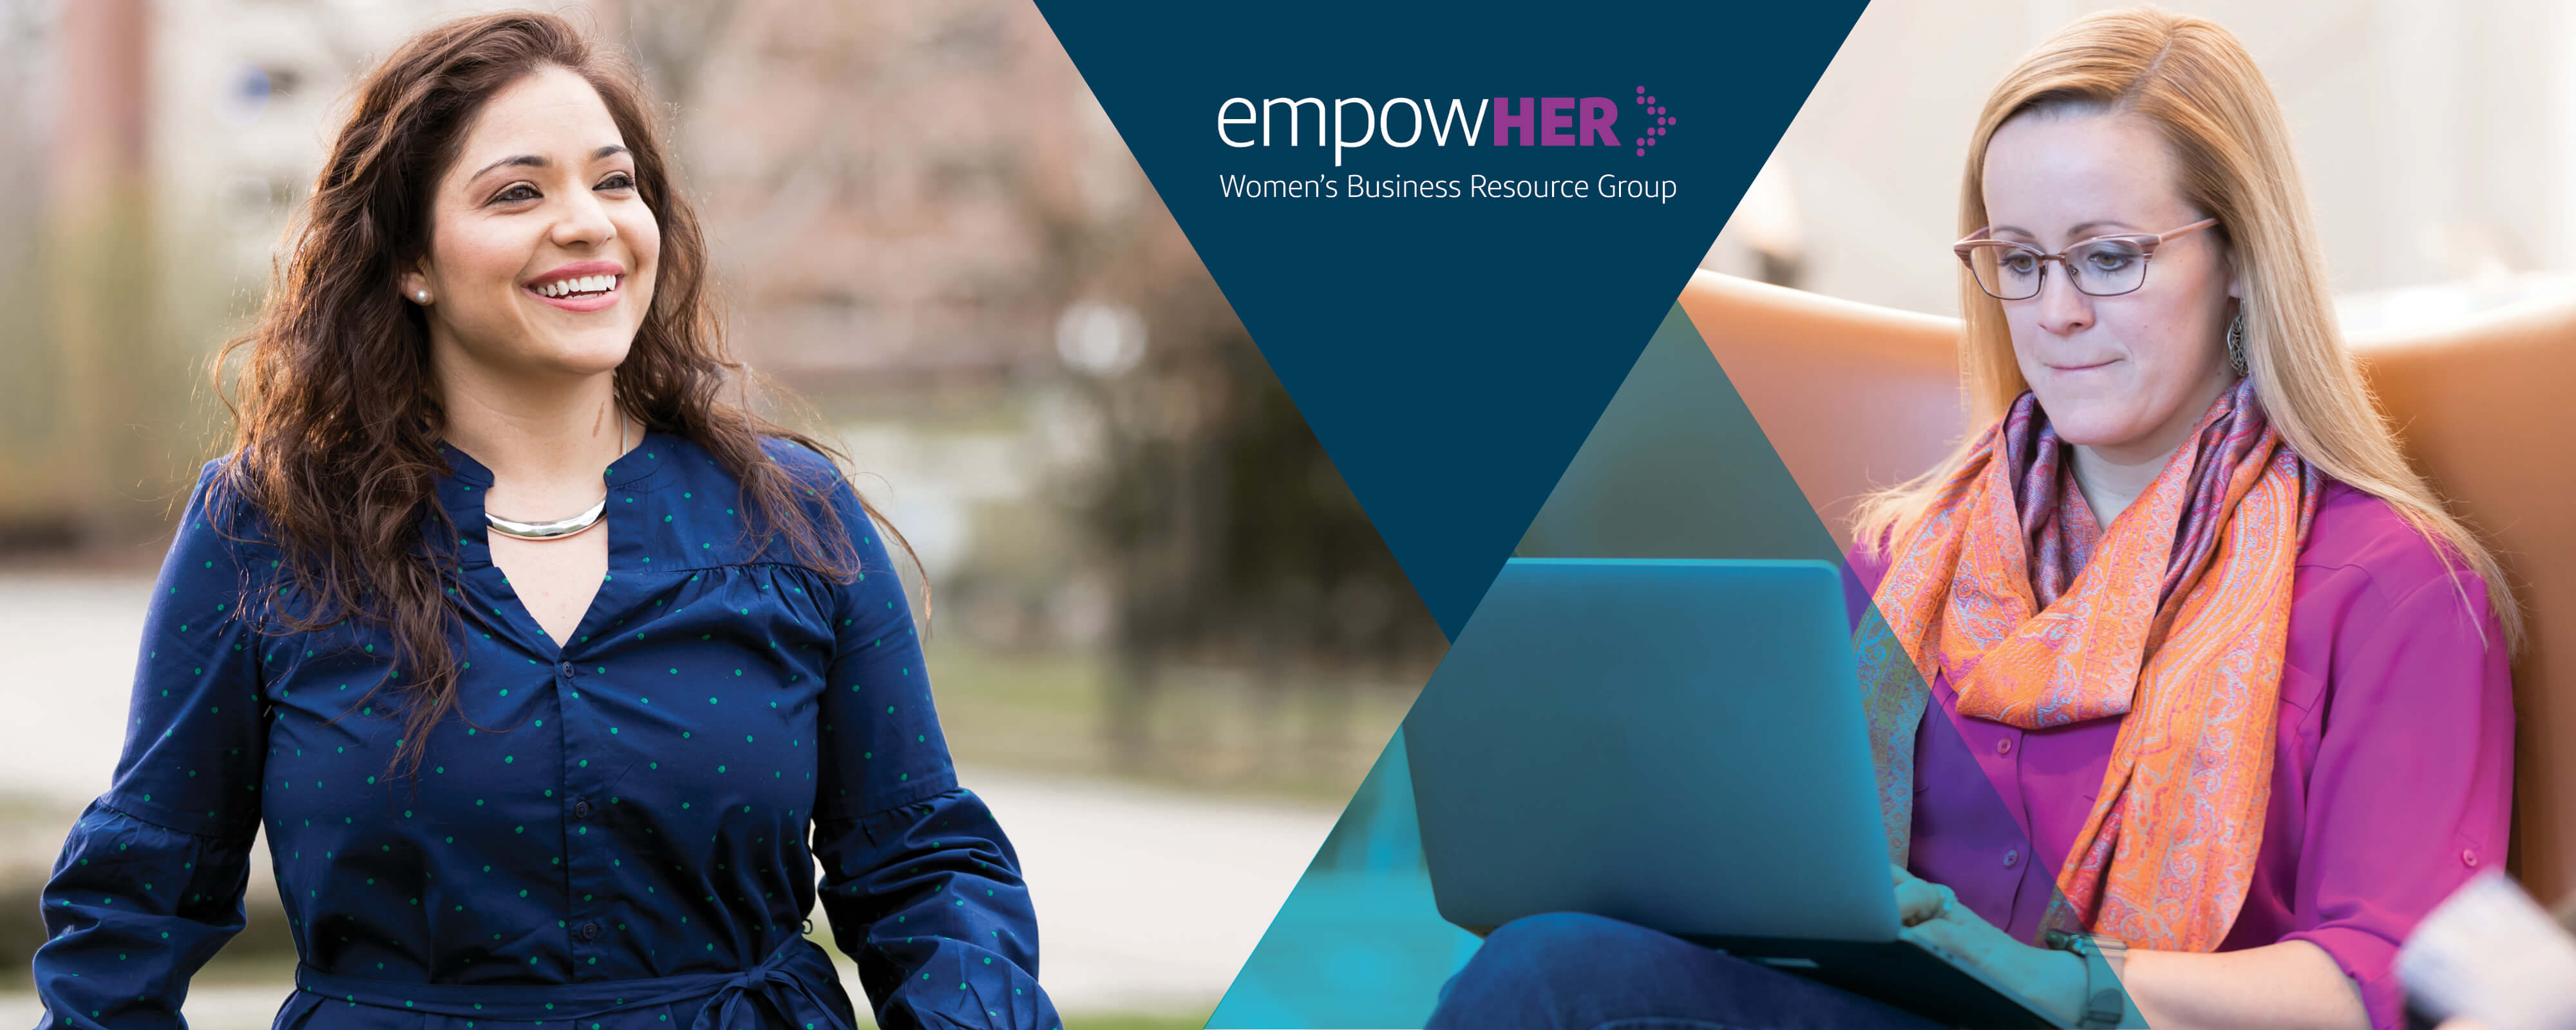 Capital One associates supporting EmpowerHER, the women's business resource group at Capital One